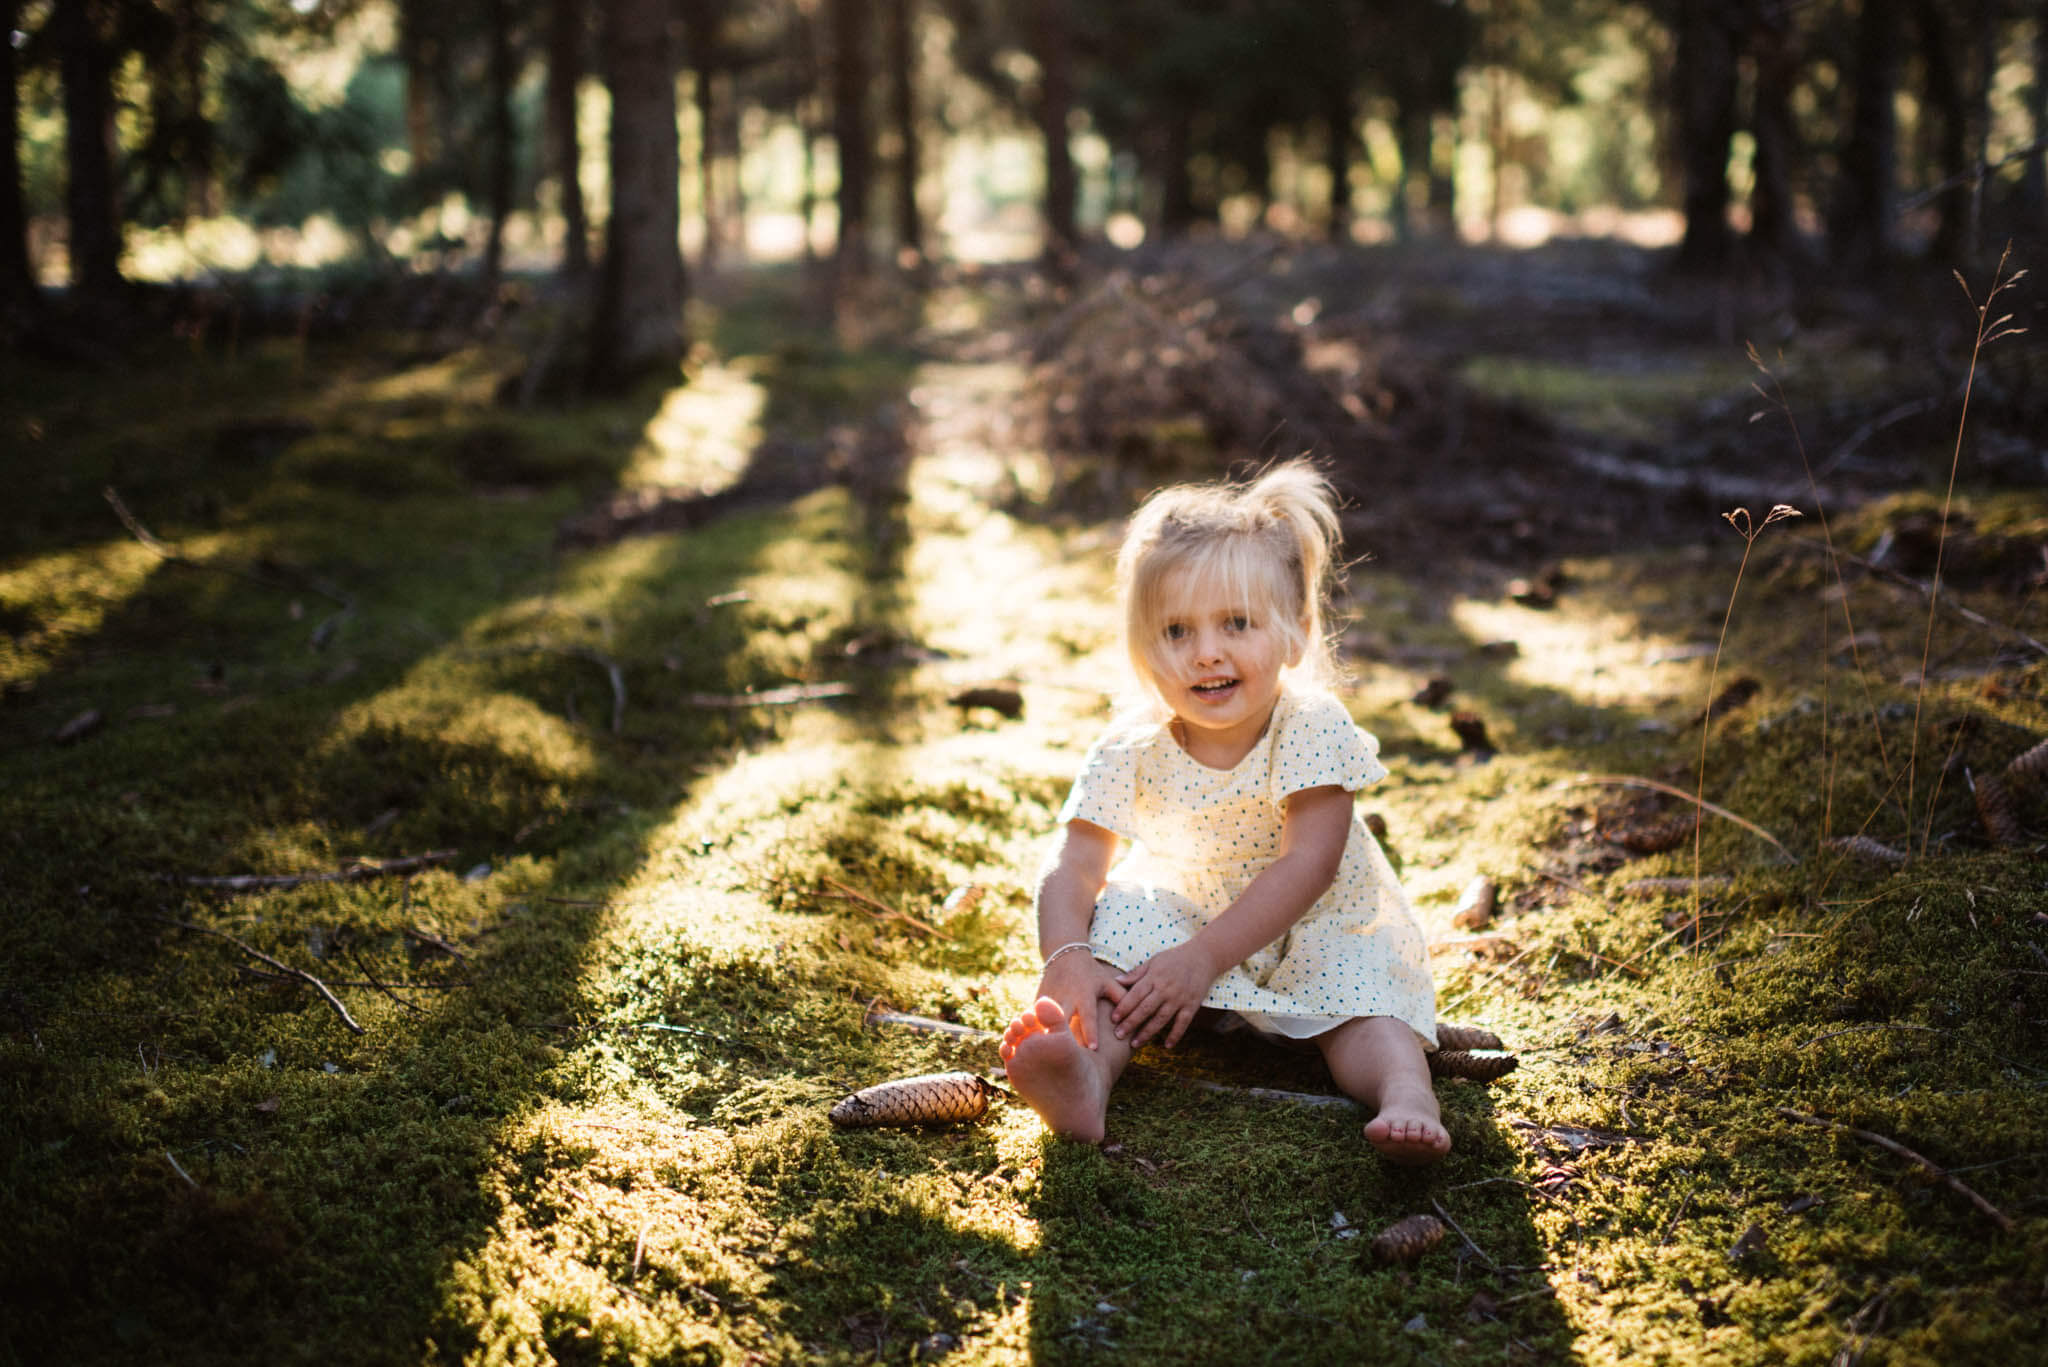 comment-photographier-une-seance-photo-famille-portrait-enfant-foret-lumiere-golden-hour